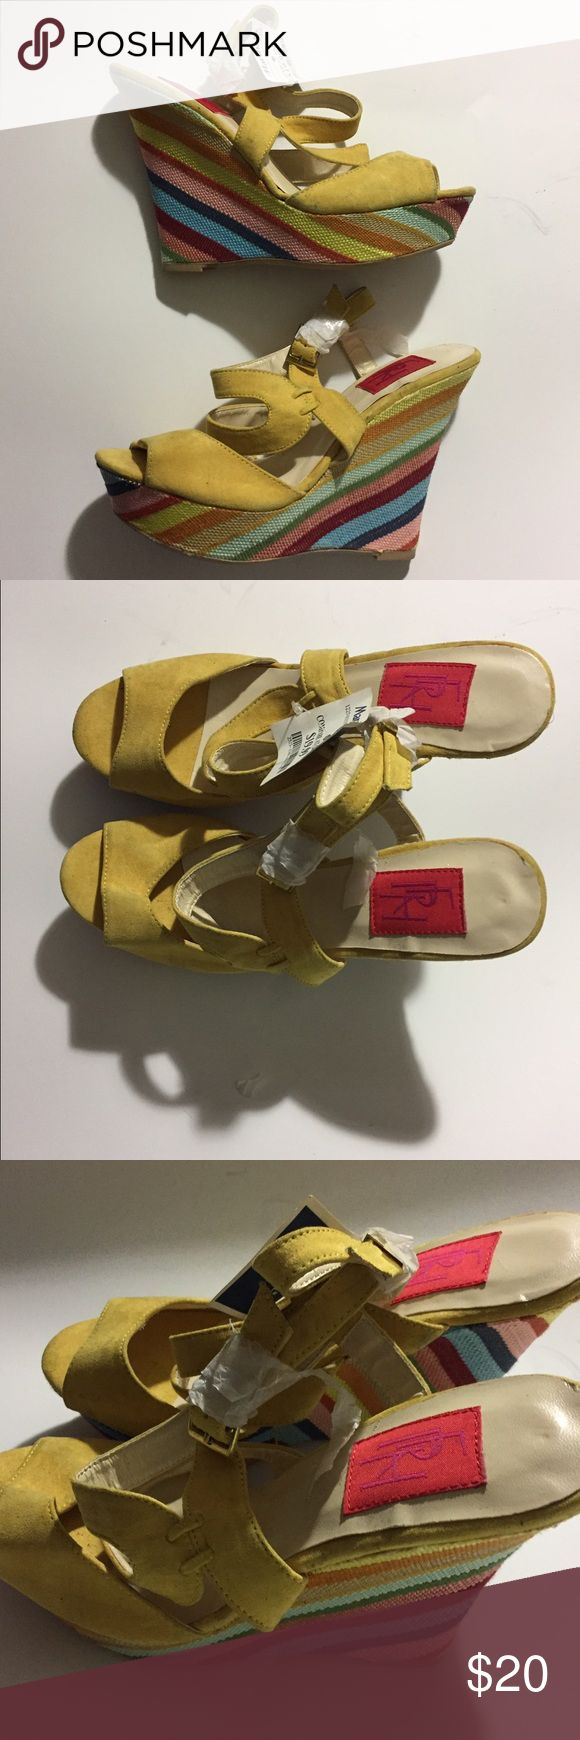 NWT Yellow Wedge Sandals from Marshalls Size 8 NWT Yellow Wedge Sandals from Marshalls Size 8 FRH Shoes Wedges